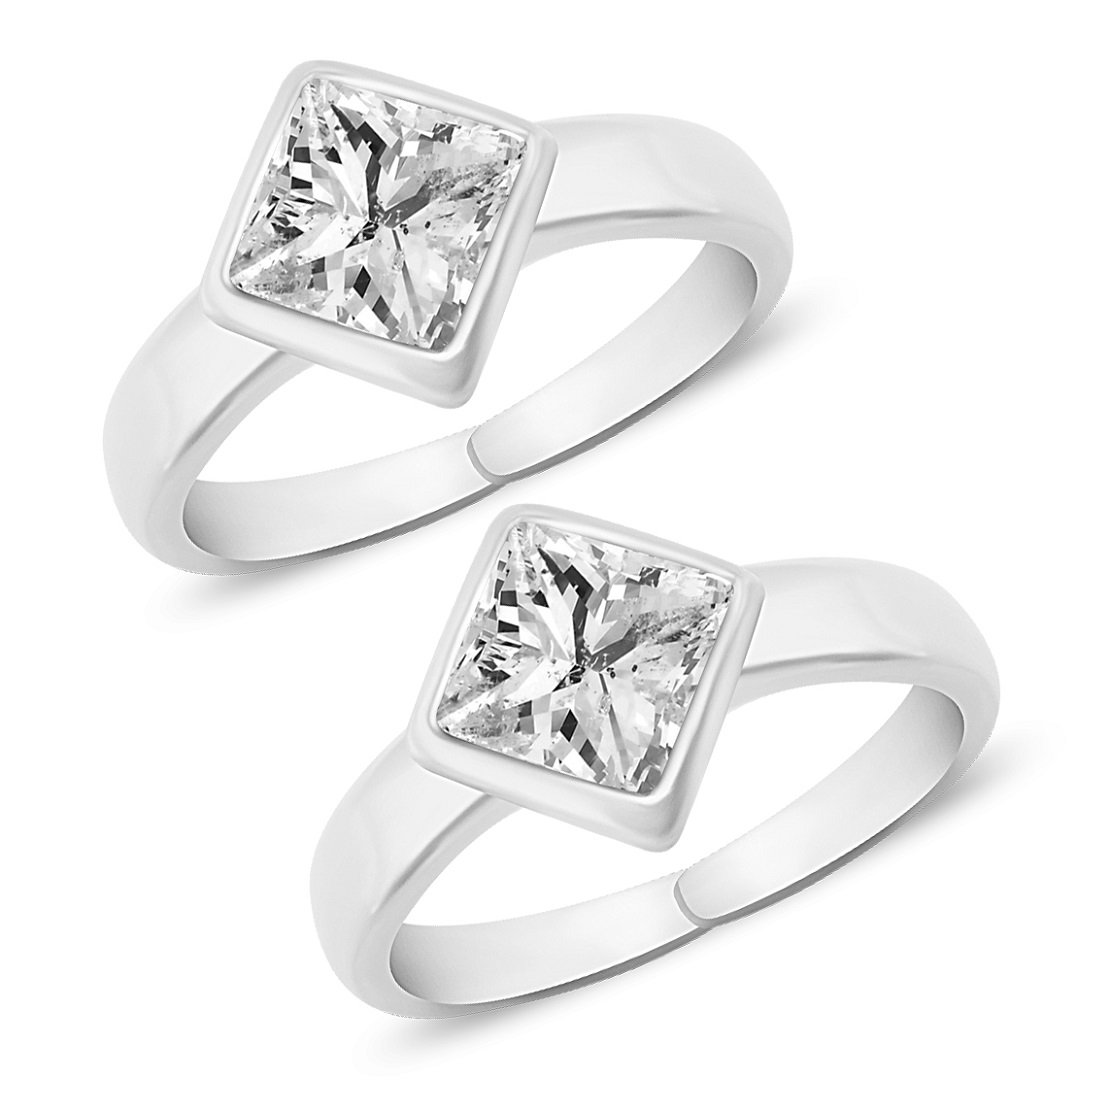 MJ 925 Solitaire CZ Silver Toe Rings in Pure 92.5 Sterling Silver for Women